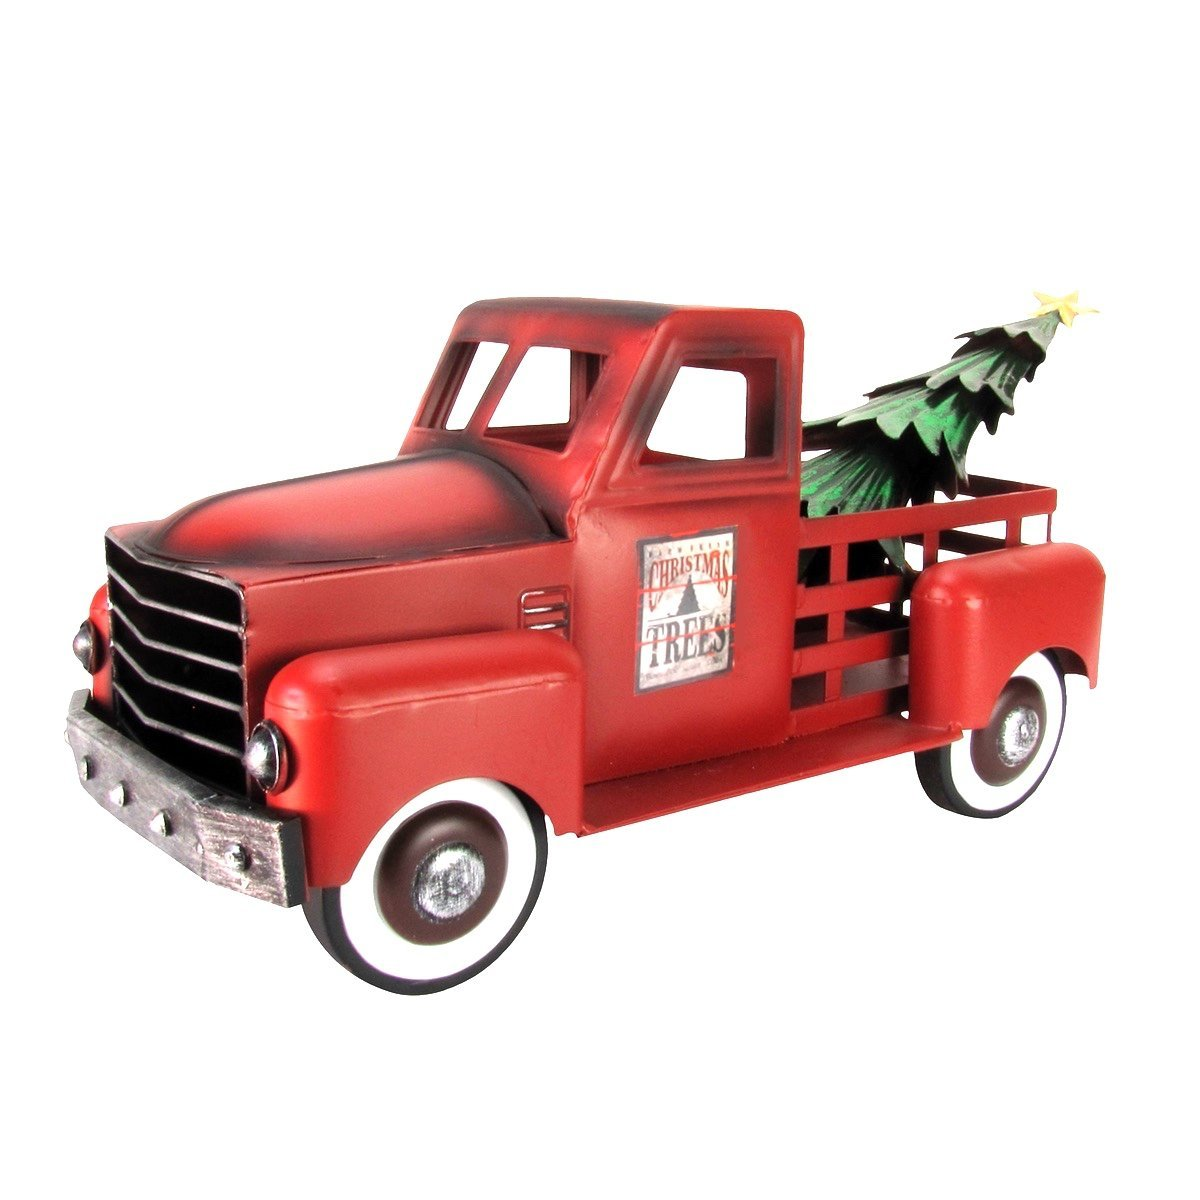 Free Christmas Tree Pick Up: Red Pickup With Christmas Tree Gift To You